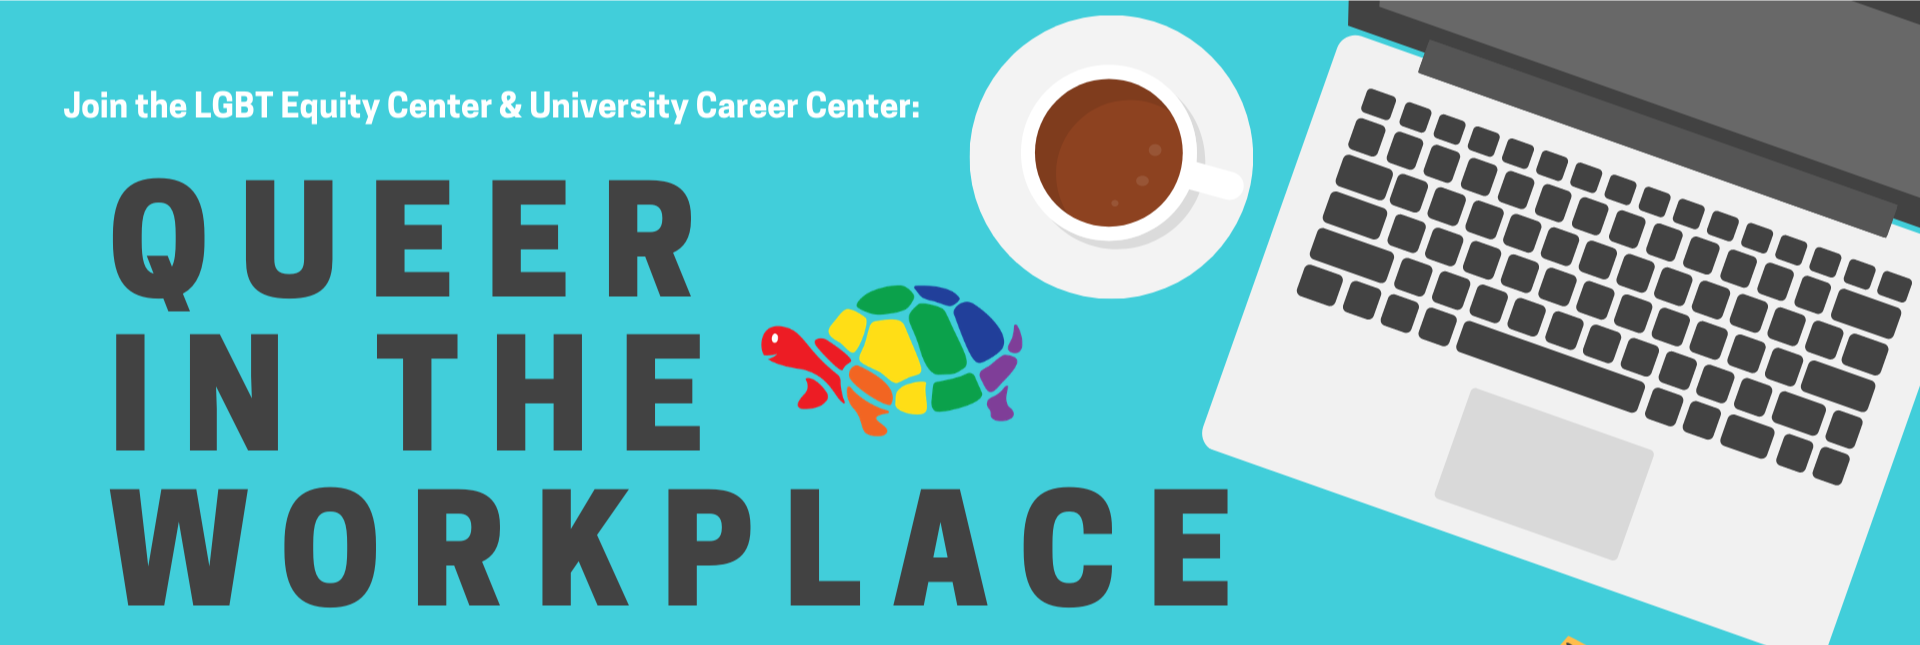 Event details are repeated on a bright turquoise background with a rainbow turtle and a laptop workspace